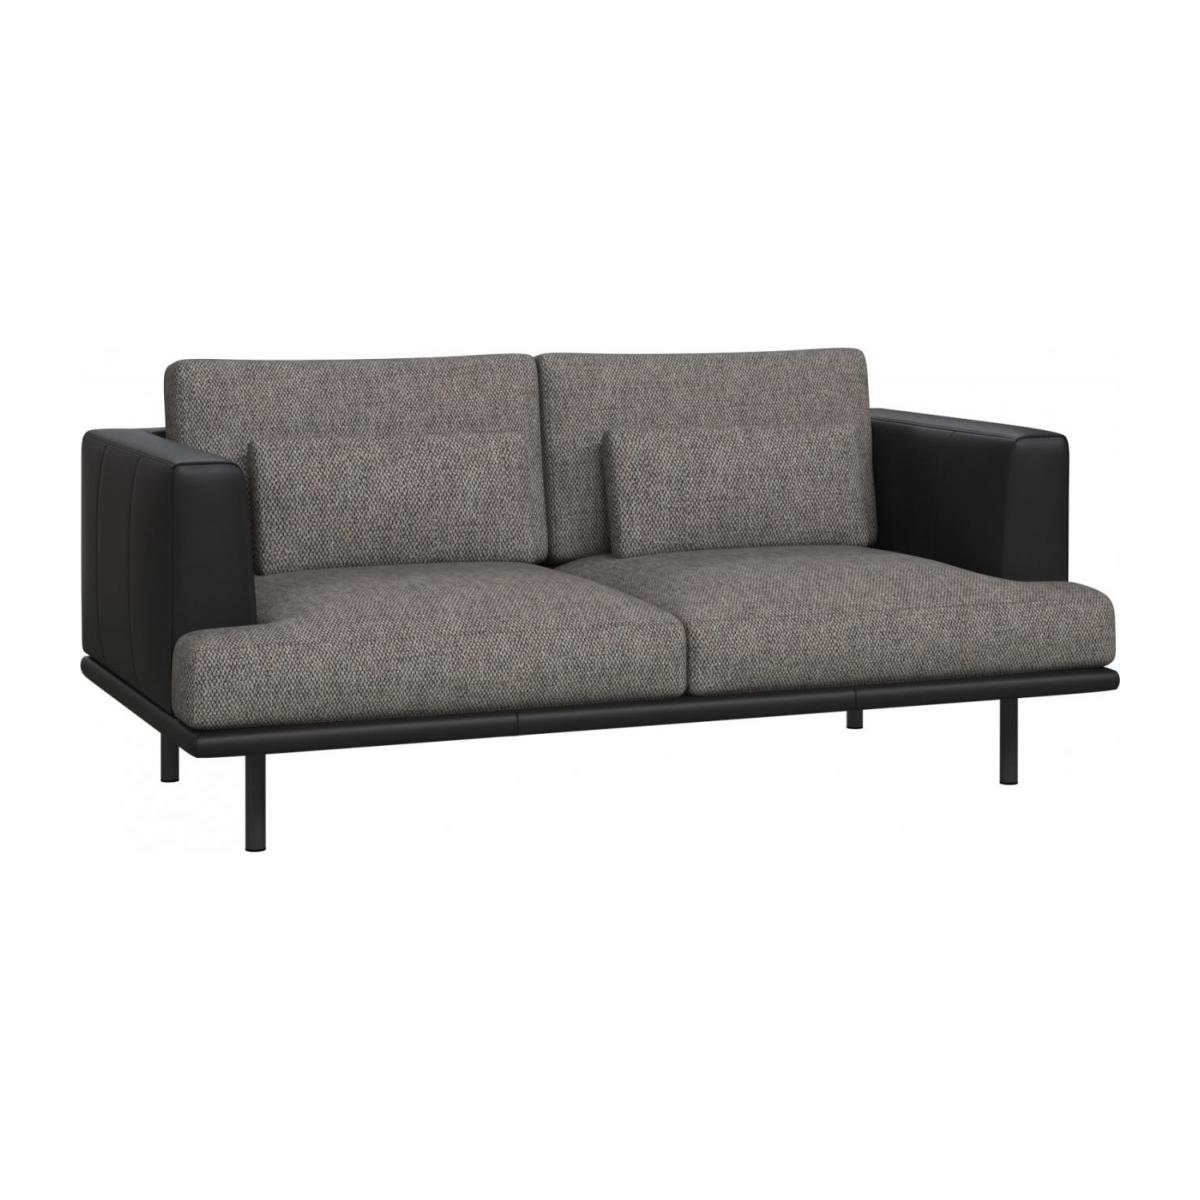 2 seater sofa in Bellagio fabric, night black with base and armrests in black leather n°1